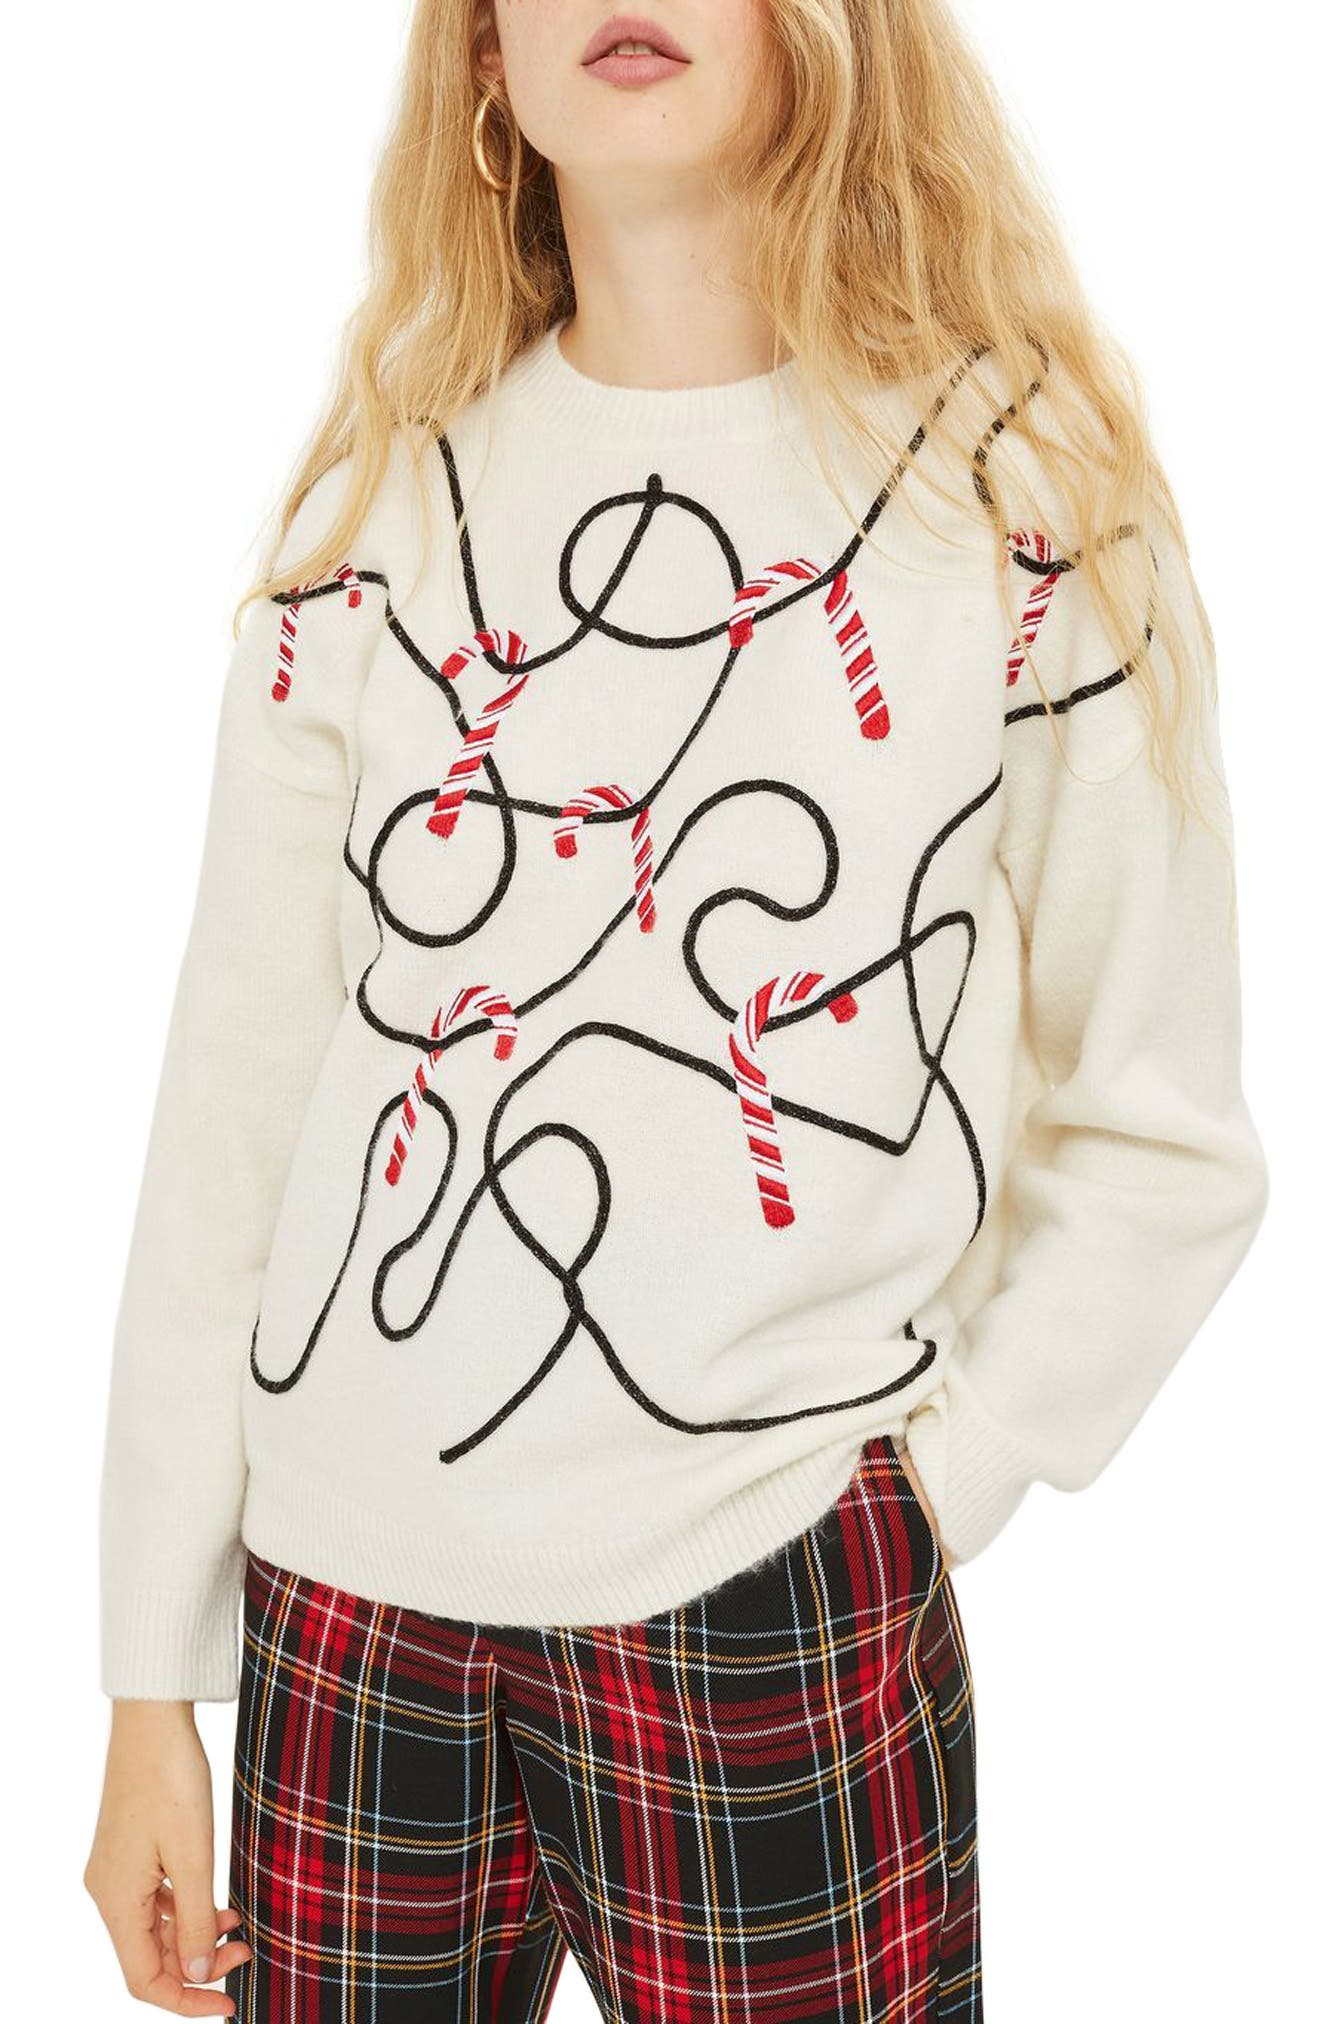 Topshop Candy Cane Sweater